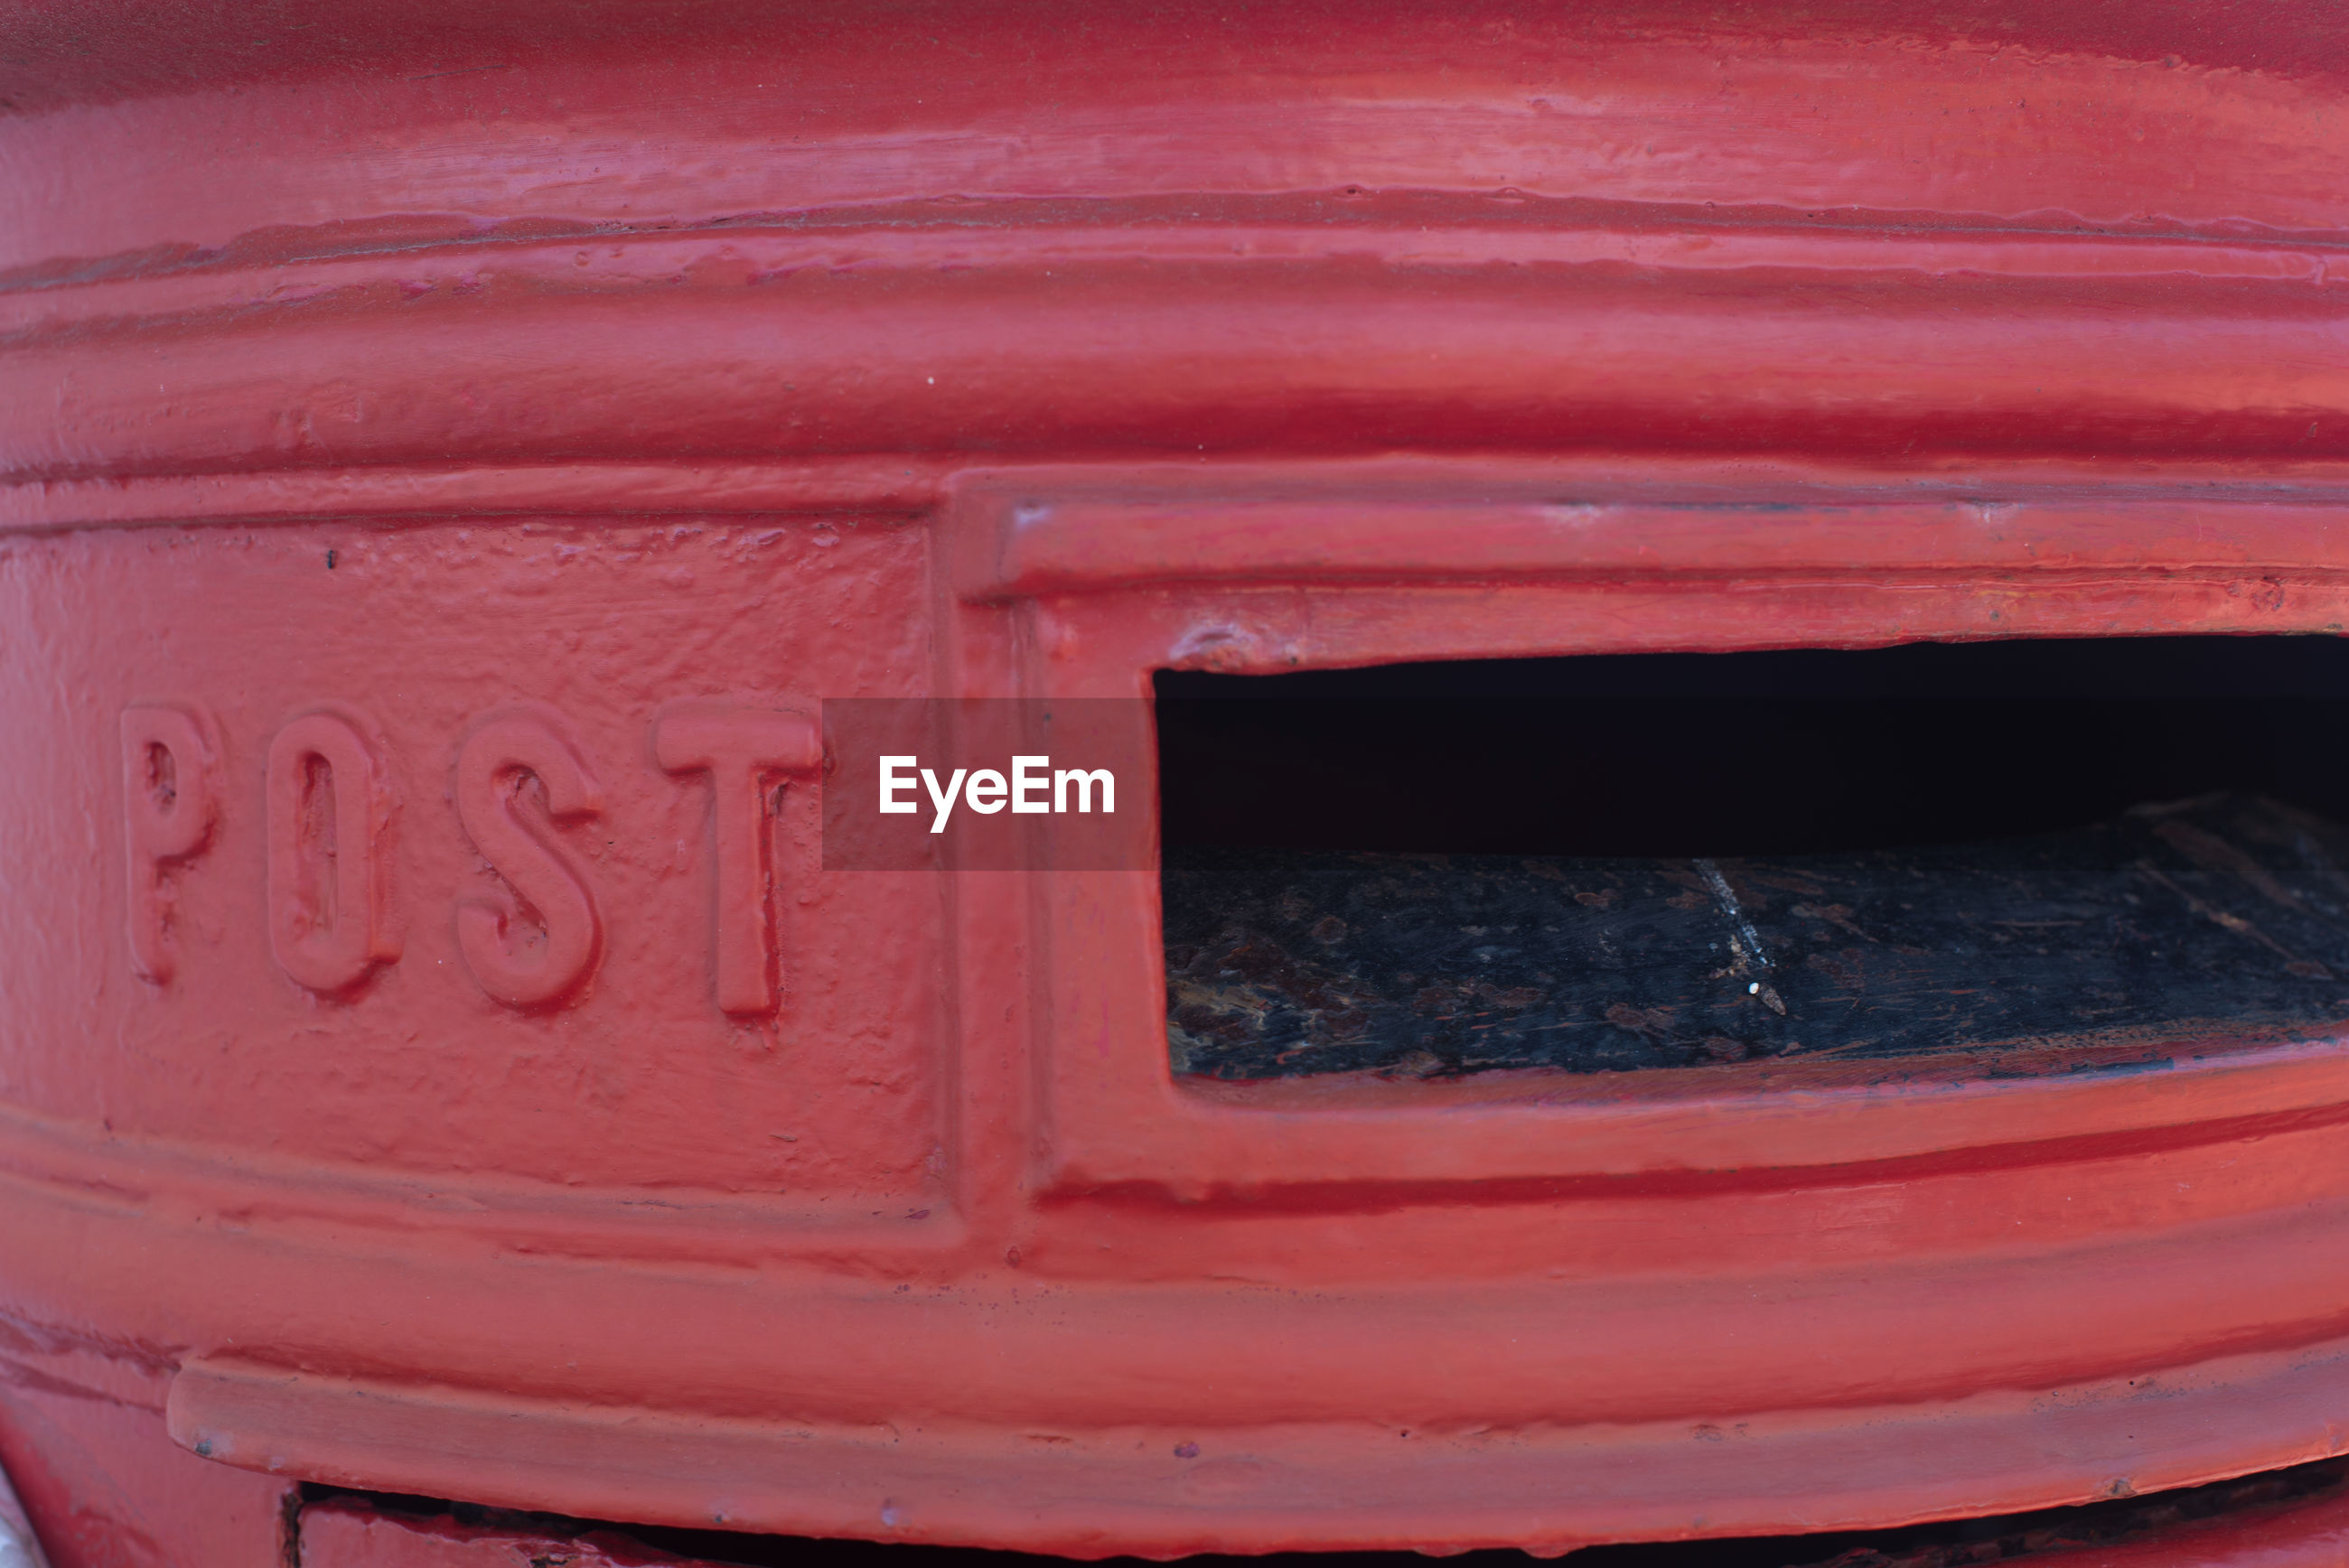 Close-up of text on red public mailbox